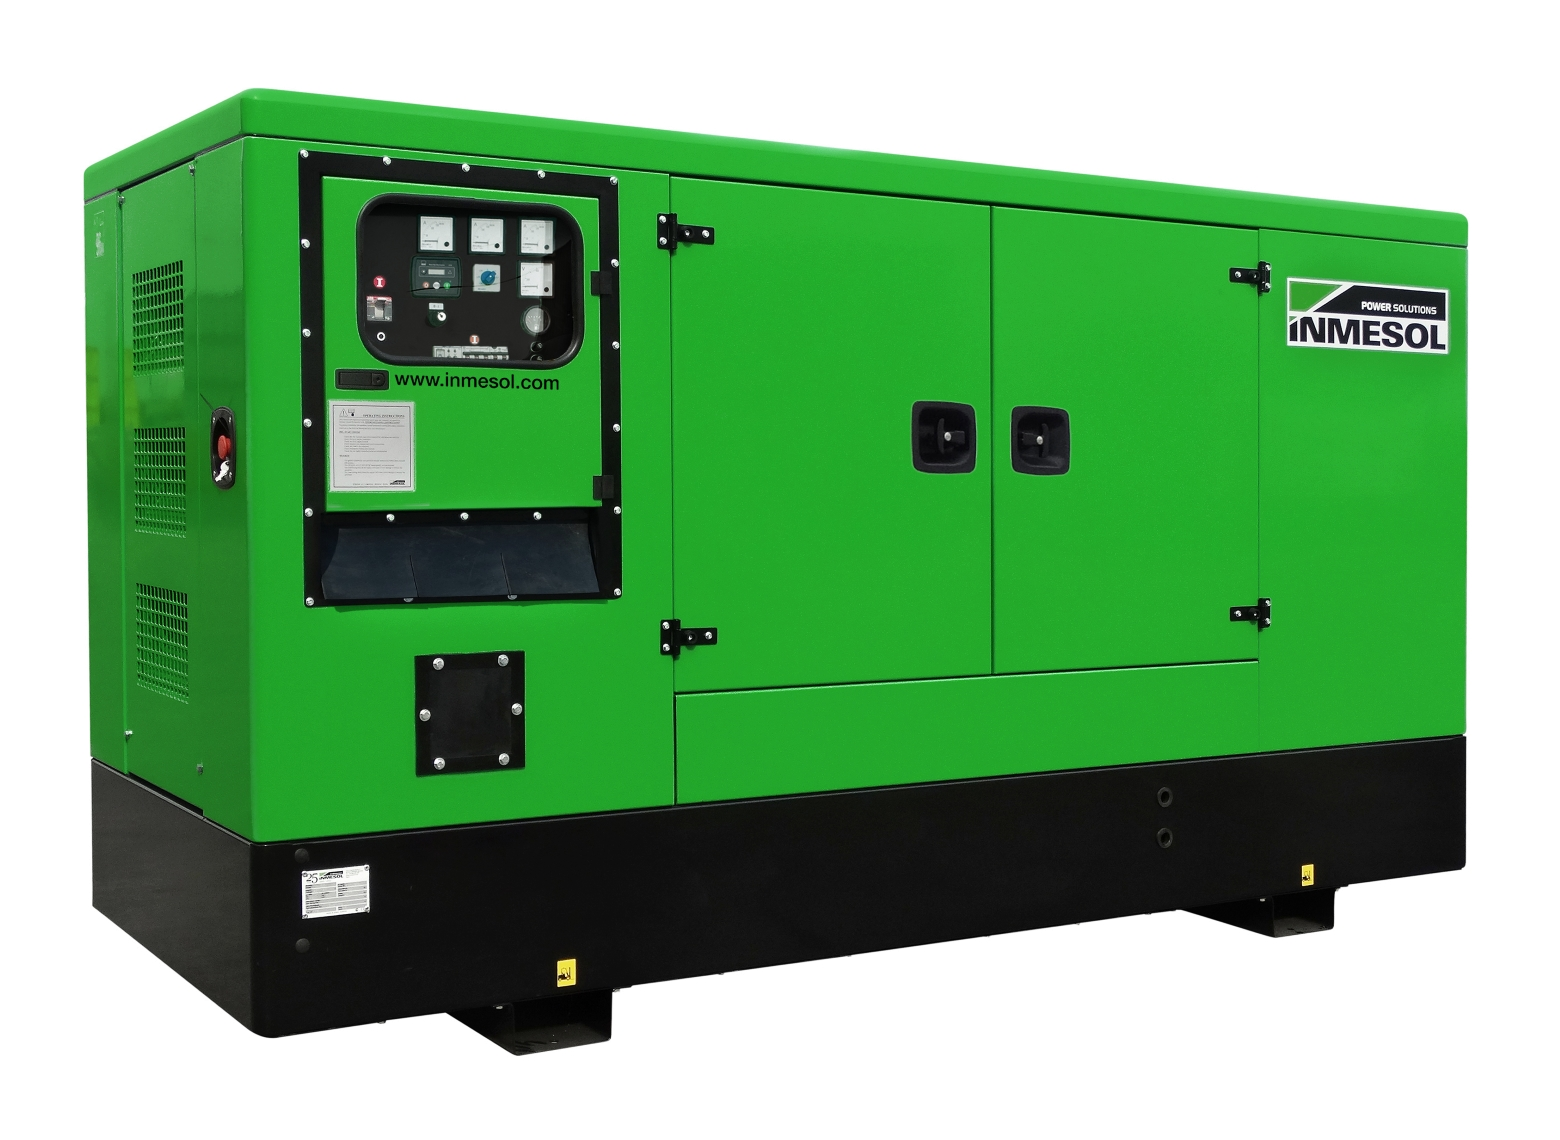 Generator with manual control panel.ID-180 - DEUTZ - BF6M1013EC(60HZ) - 1.800 R.P.M. | 60 Hz